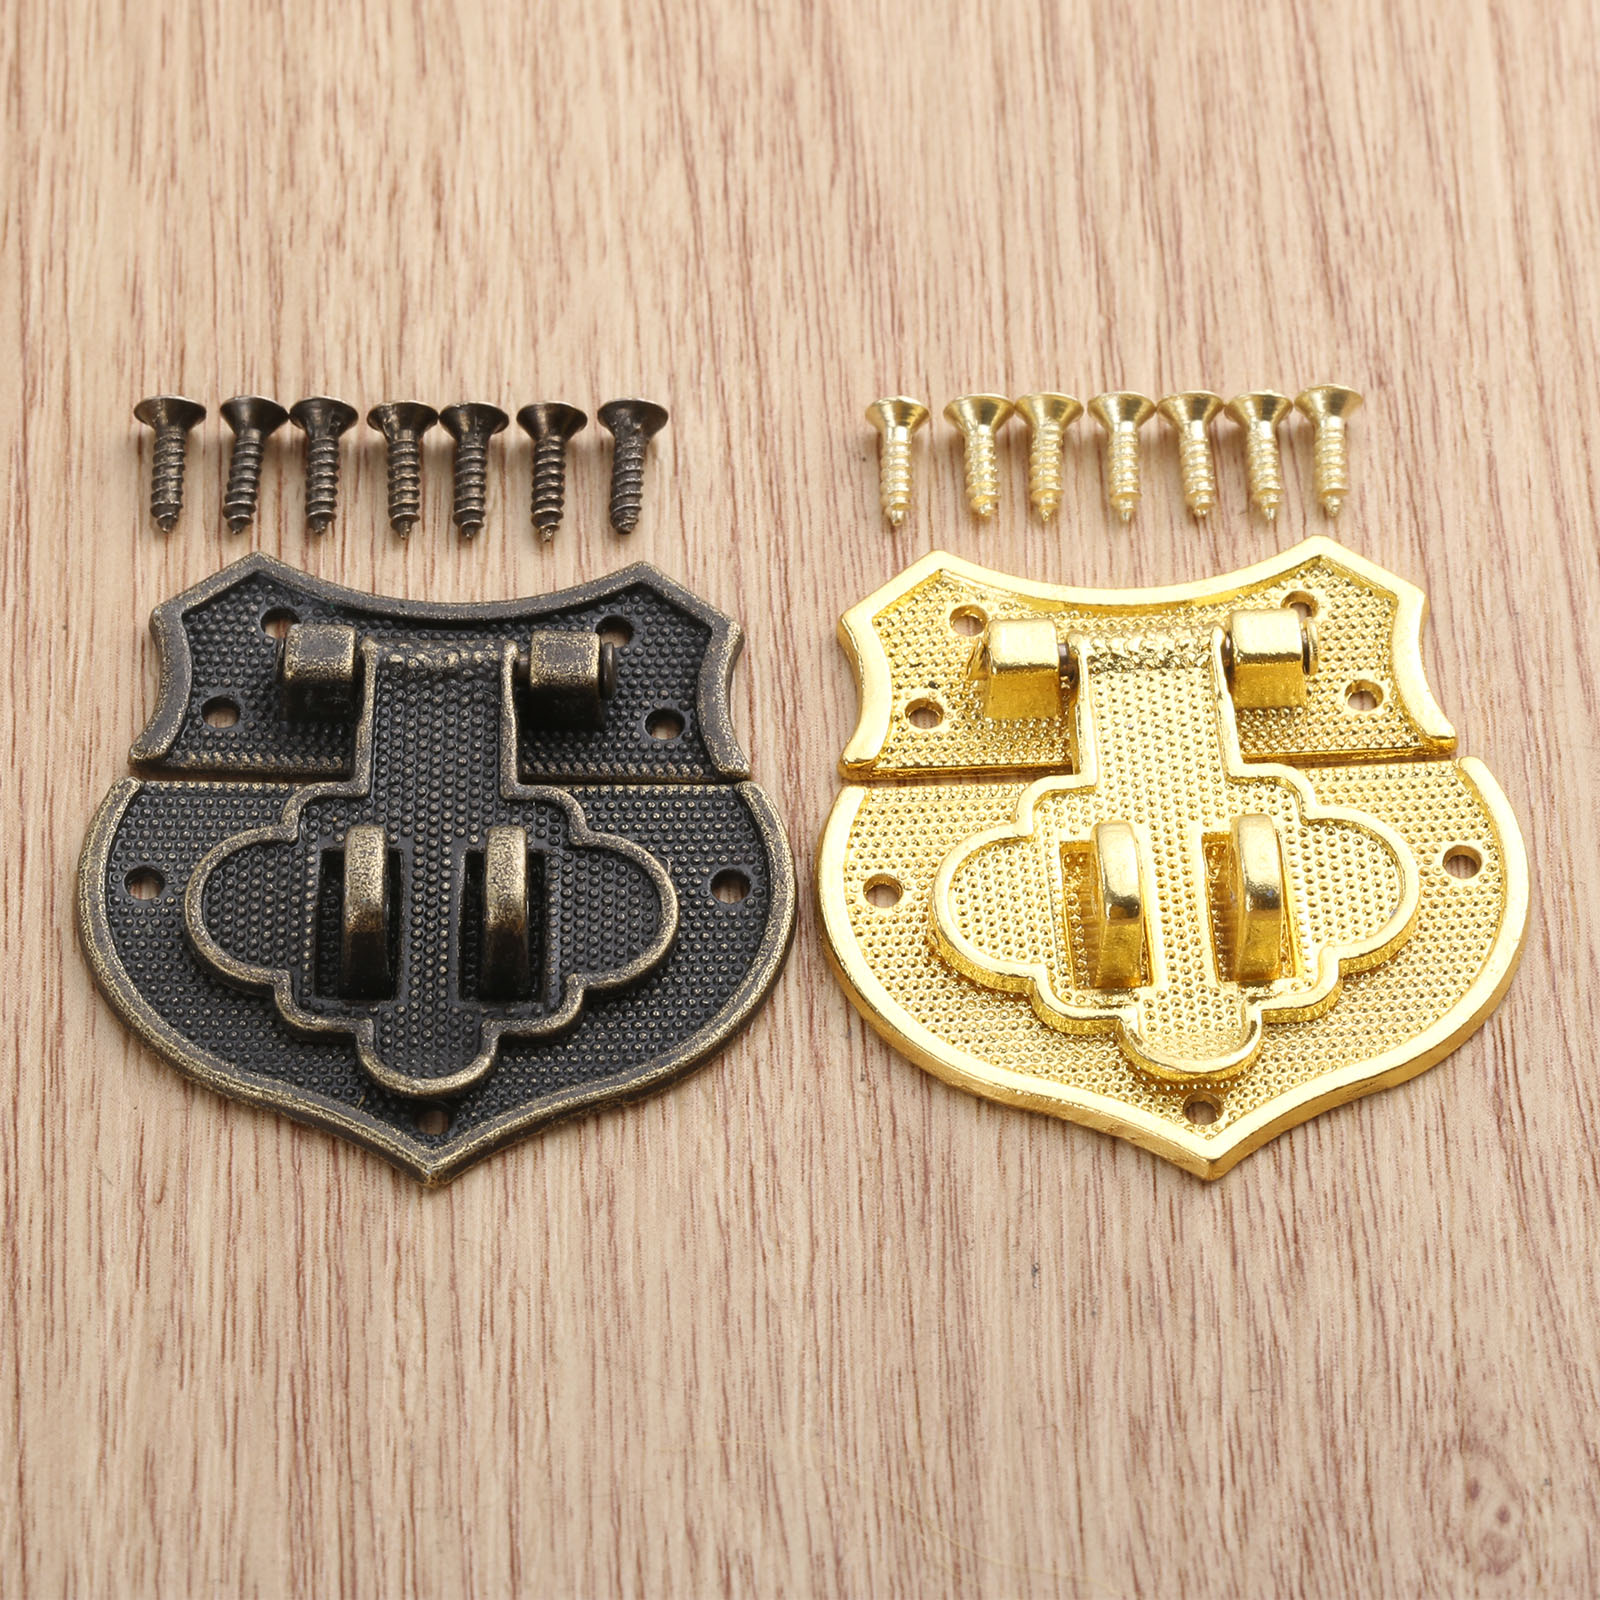 43x40mm Ox Latch Clasp Heart Buckle Hasp Hasp Wooden Wine Box With Lock Buckle Antique Padlock Hardware Zinc Alloy